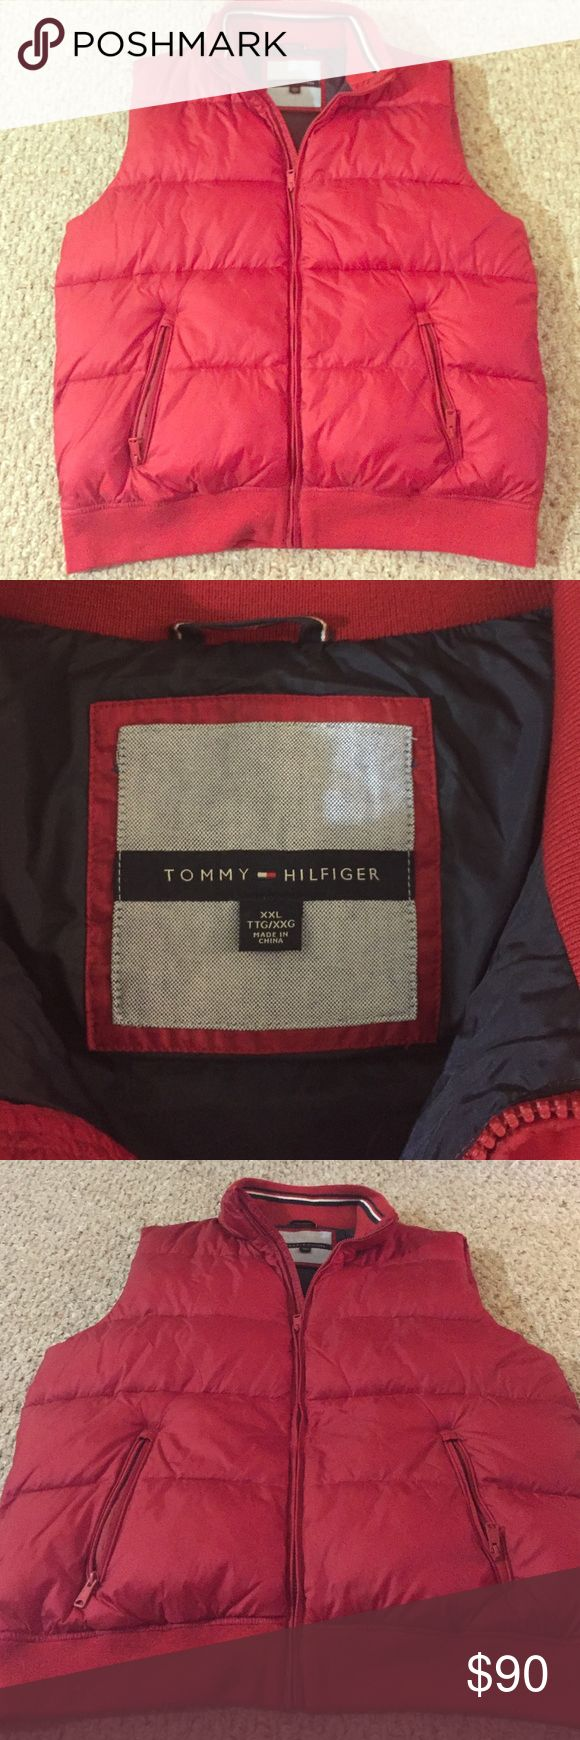 Tommy Hilfiger down vest Red, Double XL, never been worn (does not have tags) Tommy Hilfiger Jackets & Coats Vests